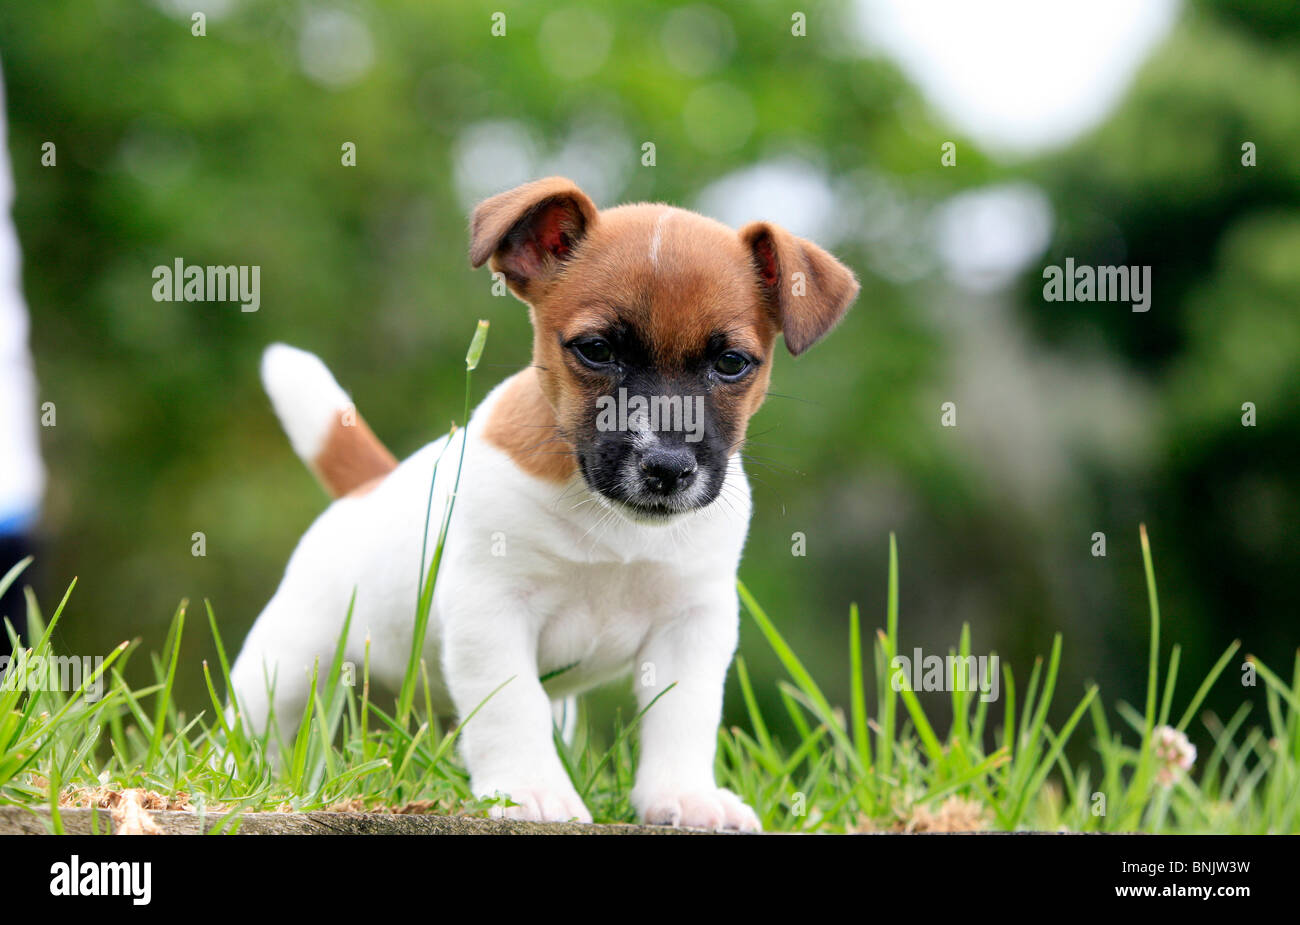 Jack Russell Puppy - Stock Image